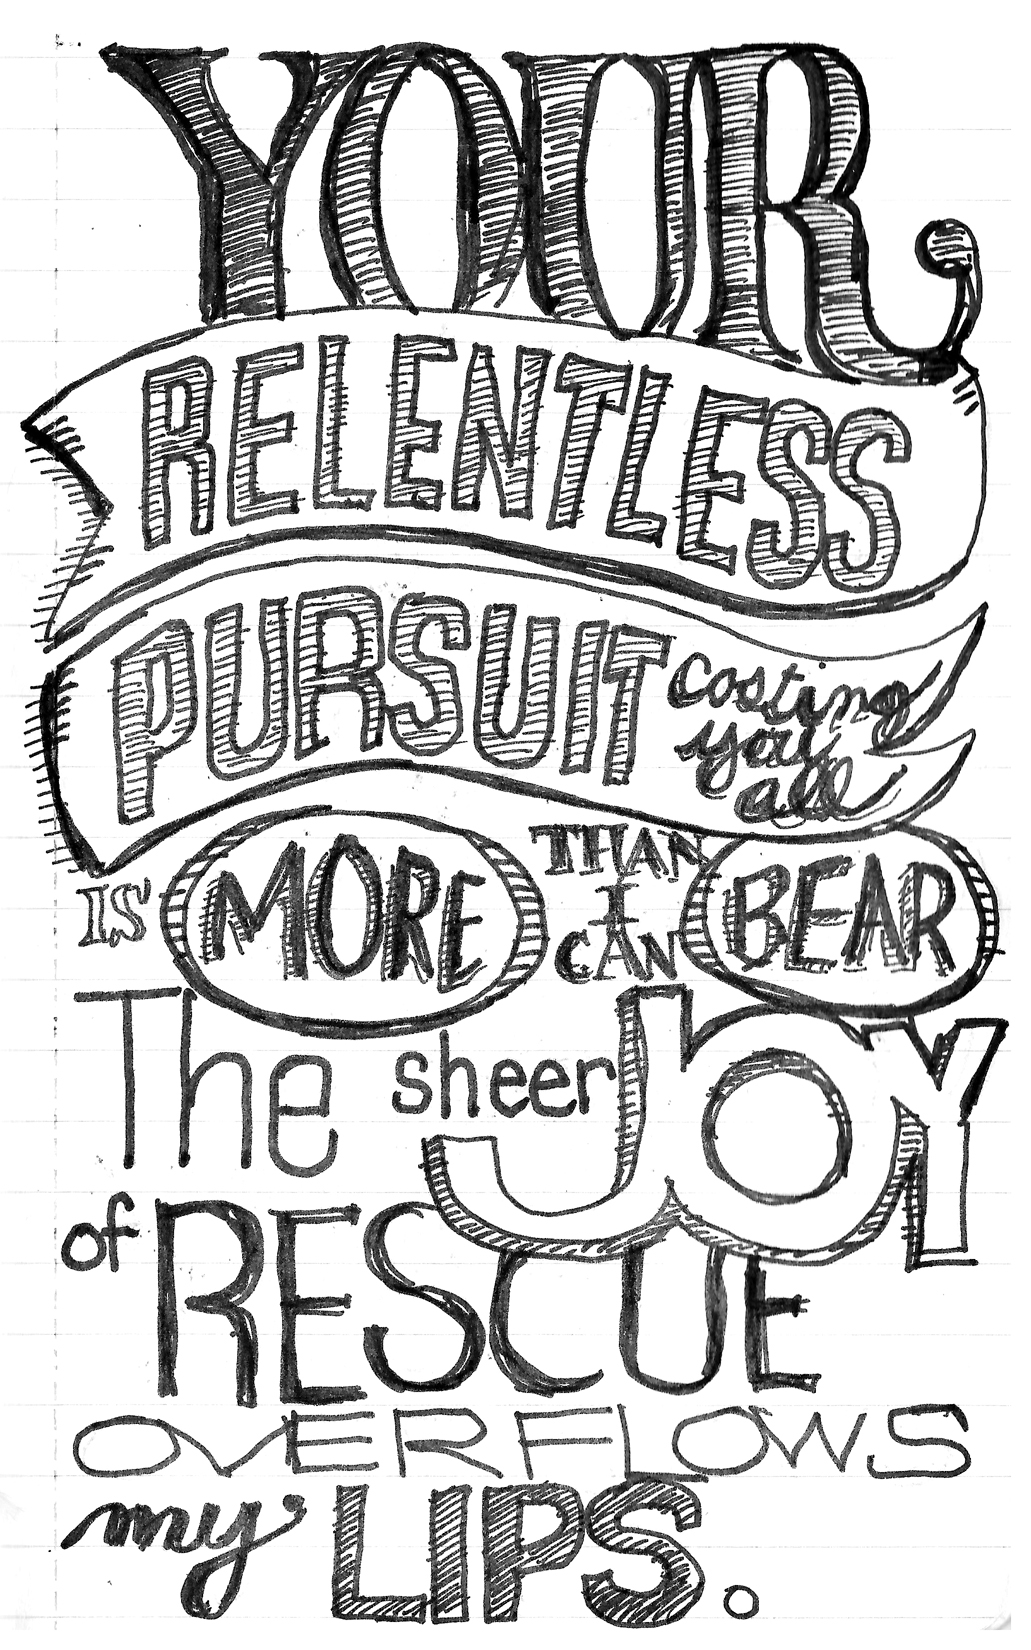 His relentless pursuit is my rescue.